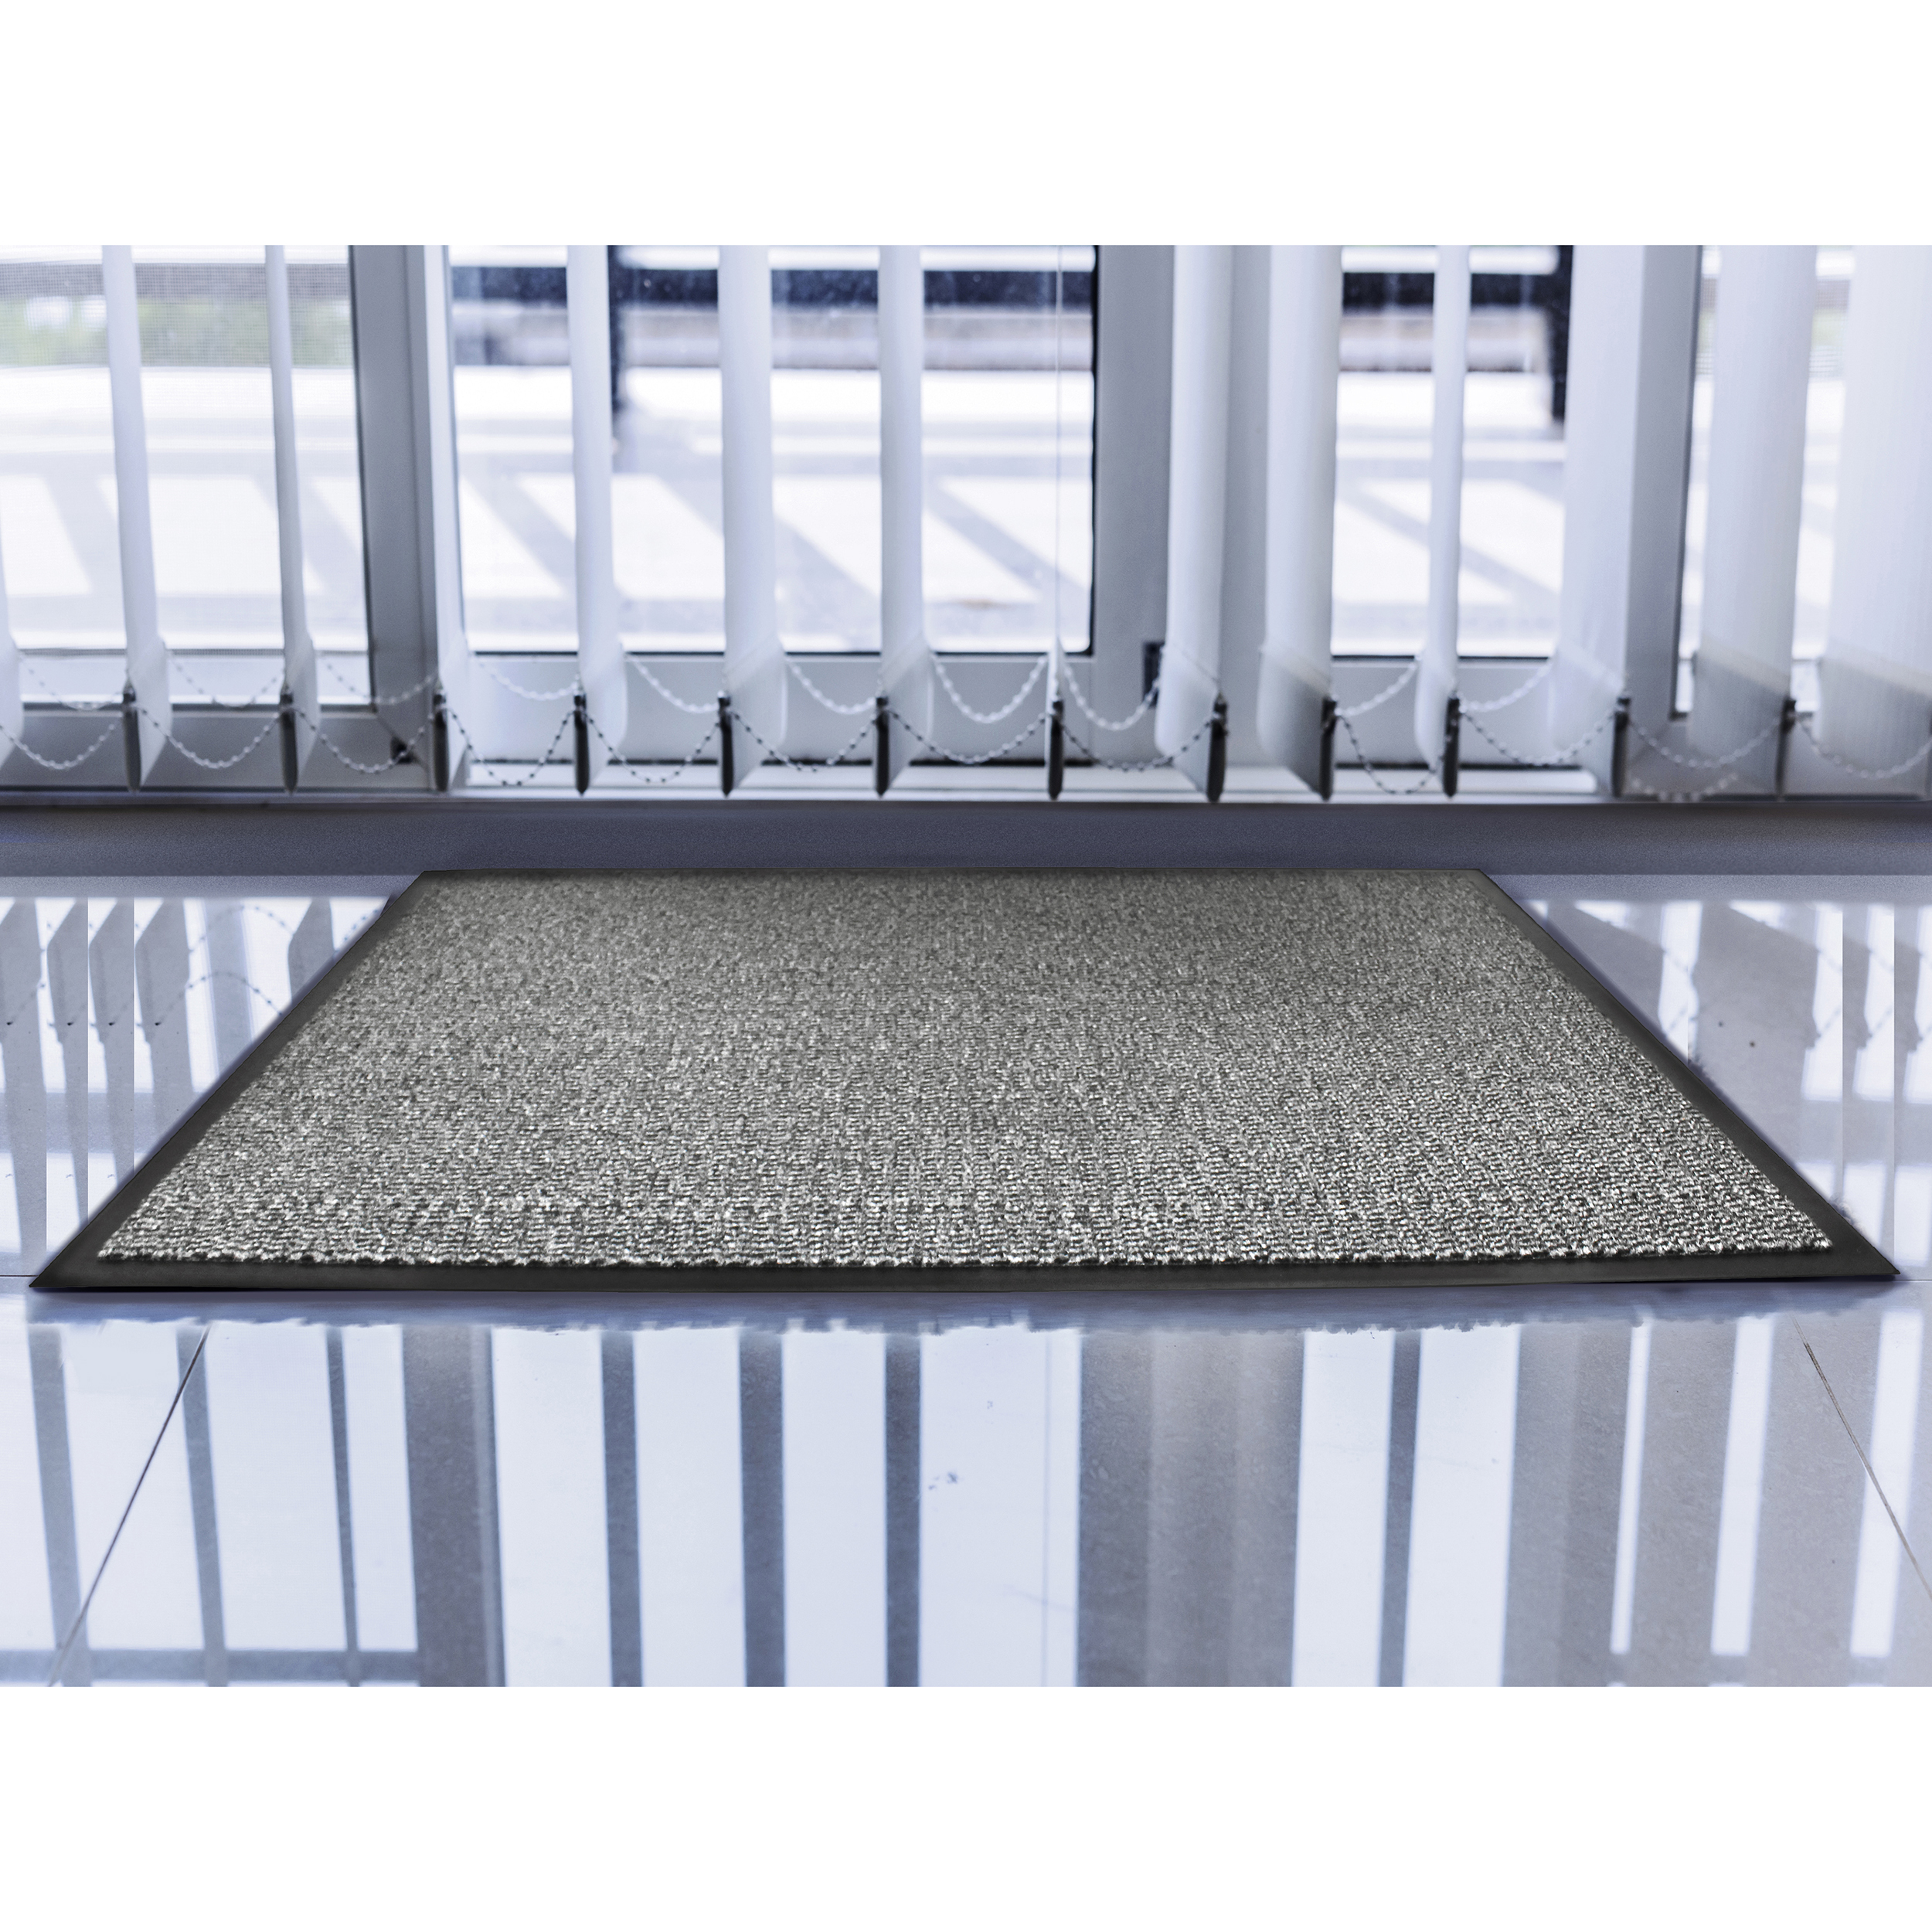 Door mats Doortex Advantagemat Door Mat for Dust & Moisture Polypropylene 900x1500mm Anthracite Ref FC49150DCBWV